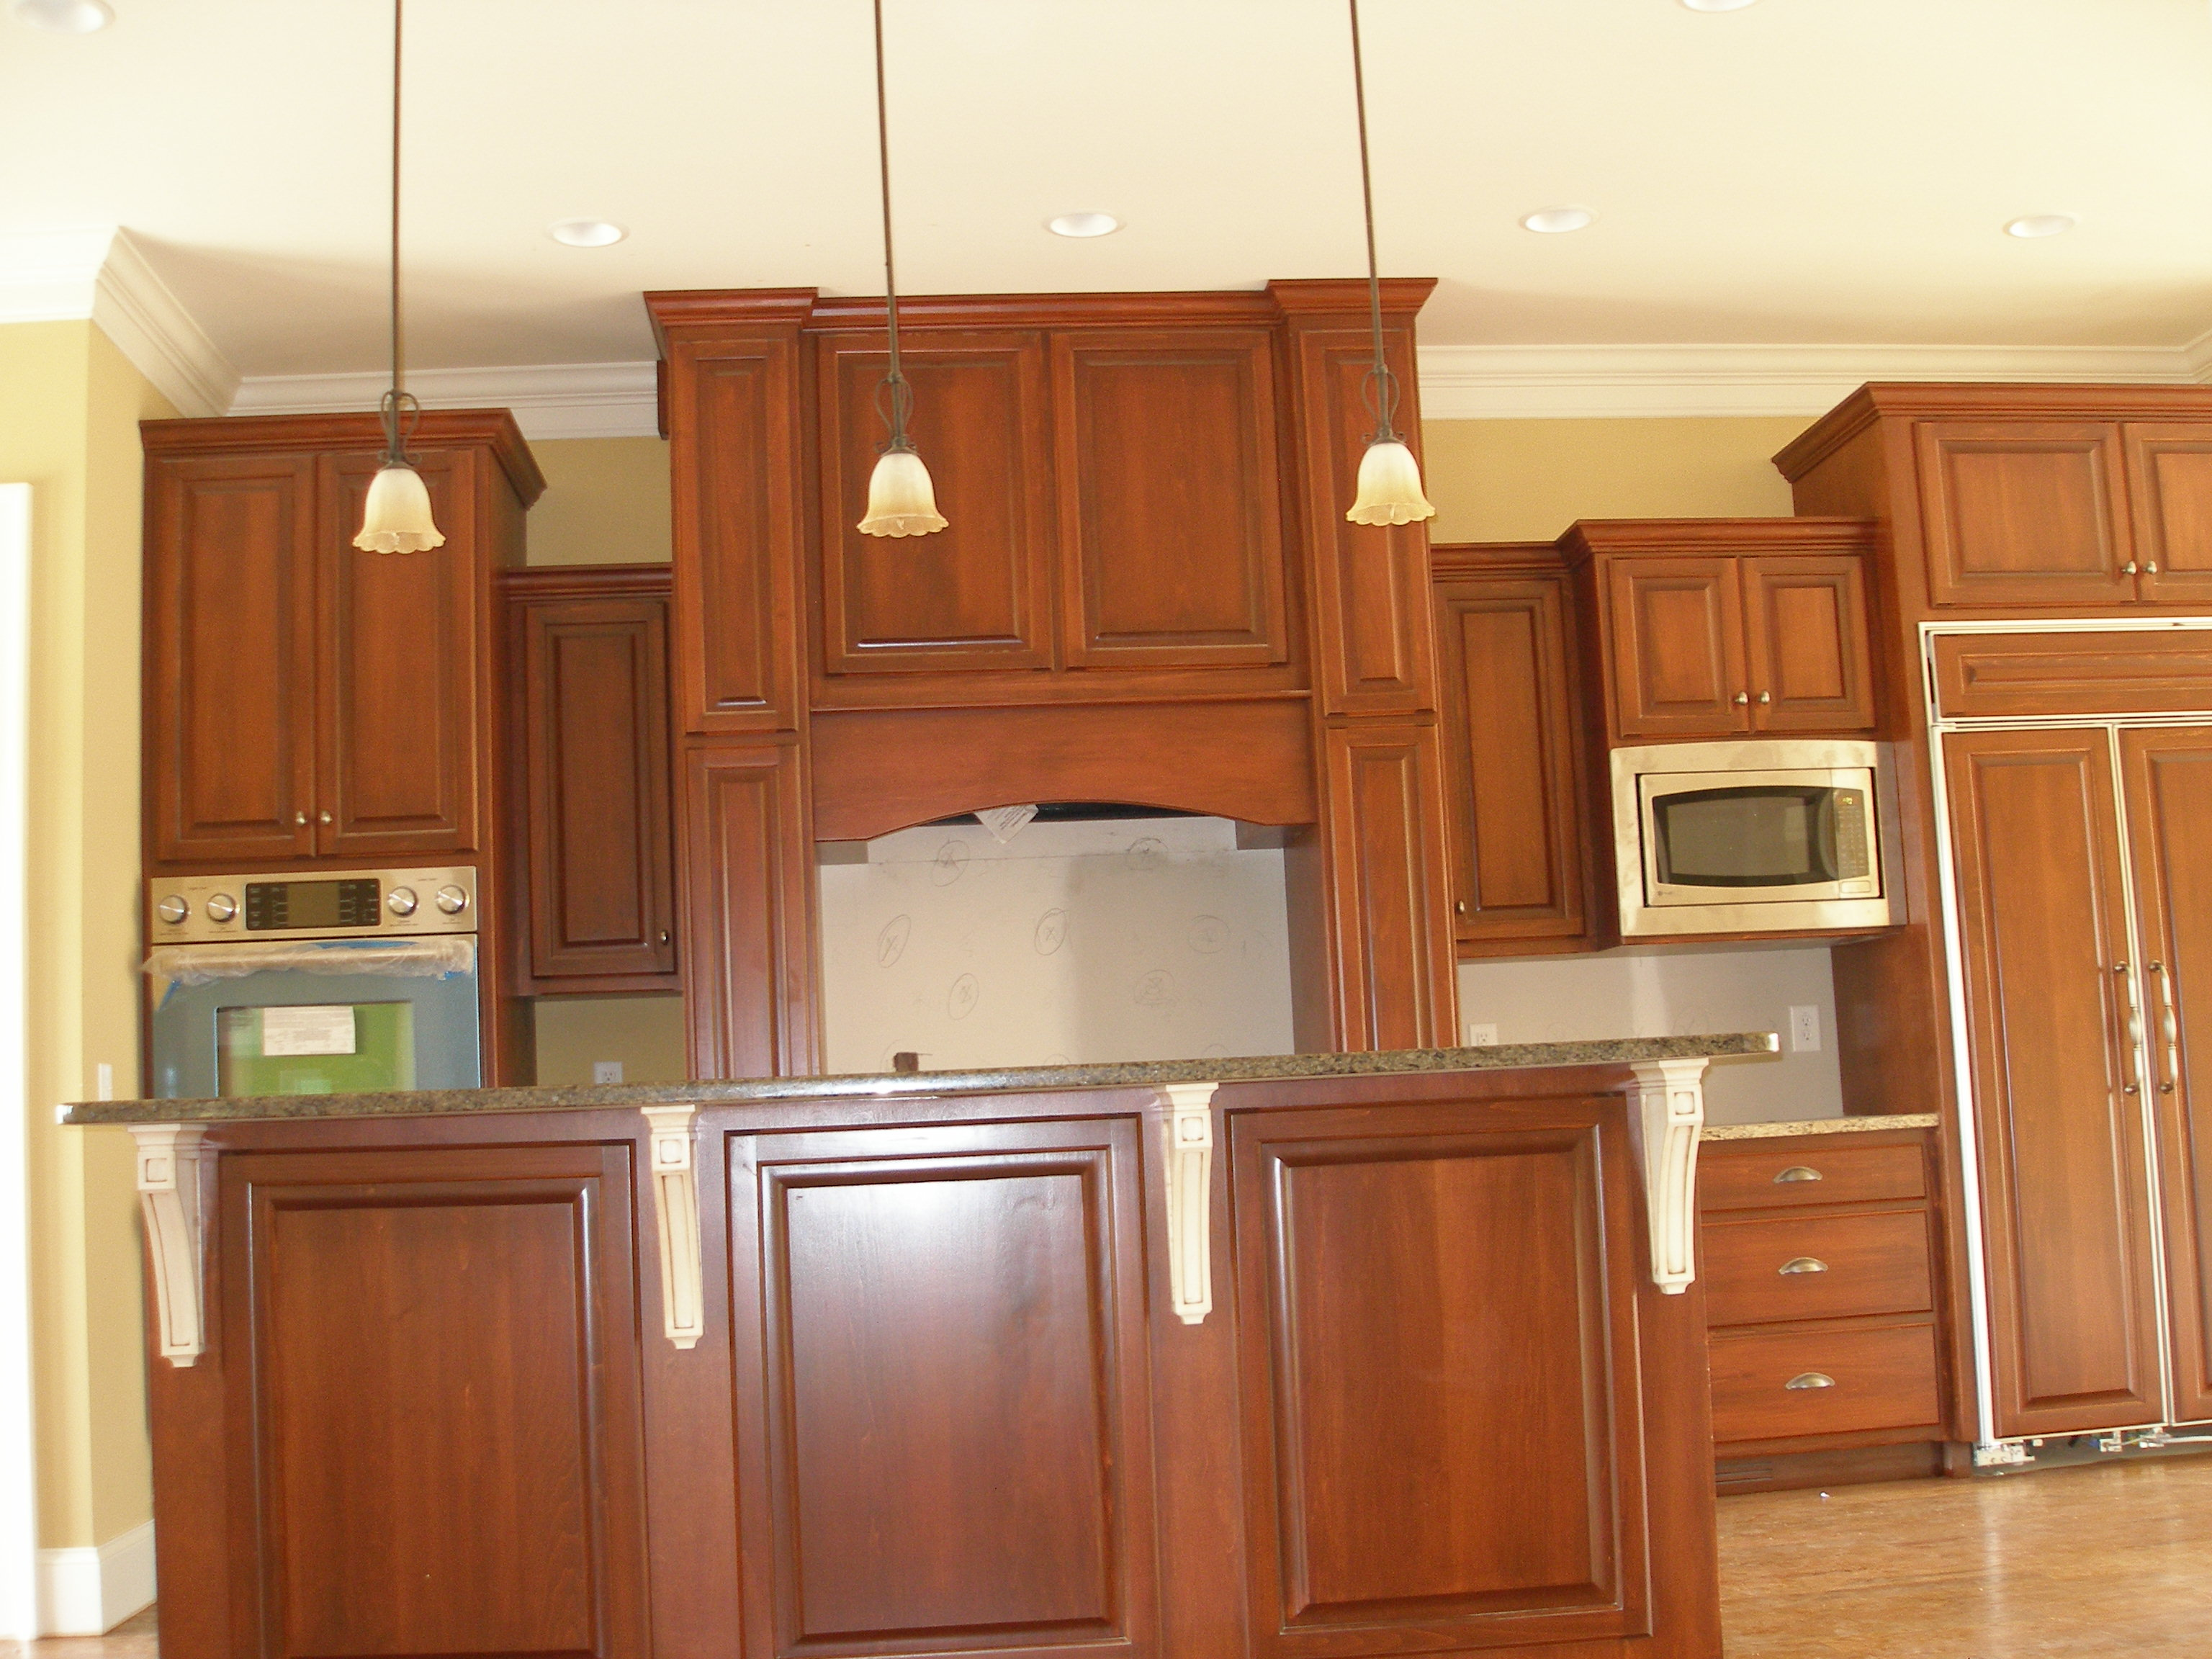 The best types of wood for building cabinets the basic for Types of wood used for cabinets